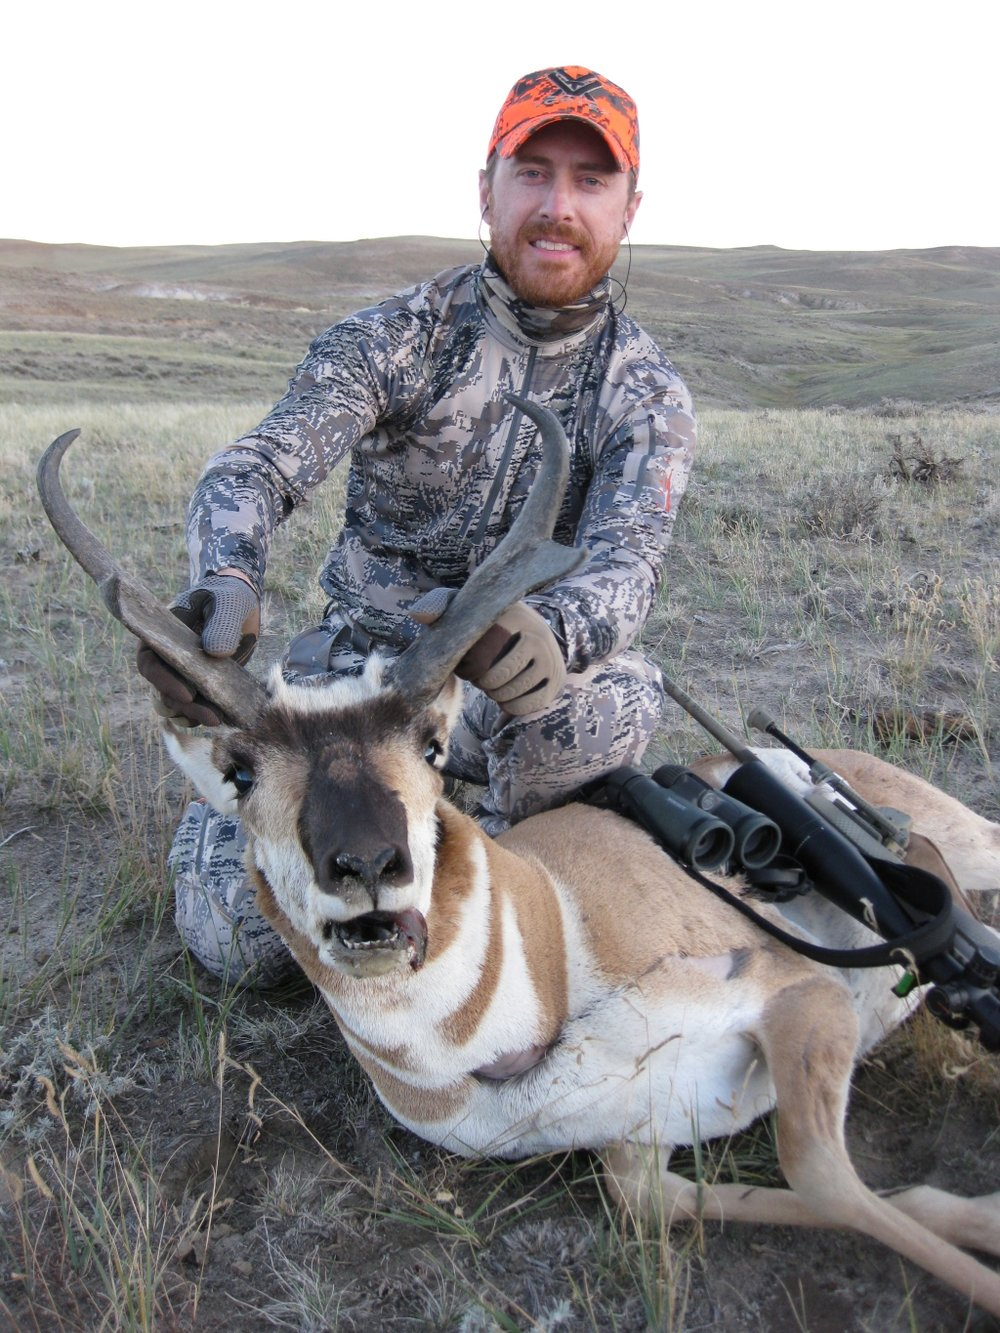 """Used my Kestrel knife on my antelope buck. This is the third animal that I've used the knife on and it works awesome. It's so light and thin you don't even know it's in your pack. The other thing I really like is that it's so simple…no folding mechanism or blades to cut yourself on while changing them out (Havalon!) but enough mass behind the blade to really carve against bone, pry with, or whatever. Kestrel has it figured out…simple, effective, light, and cutting edge (pun intended)""  David Hamilton Vortex Optics"